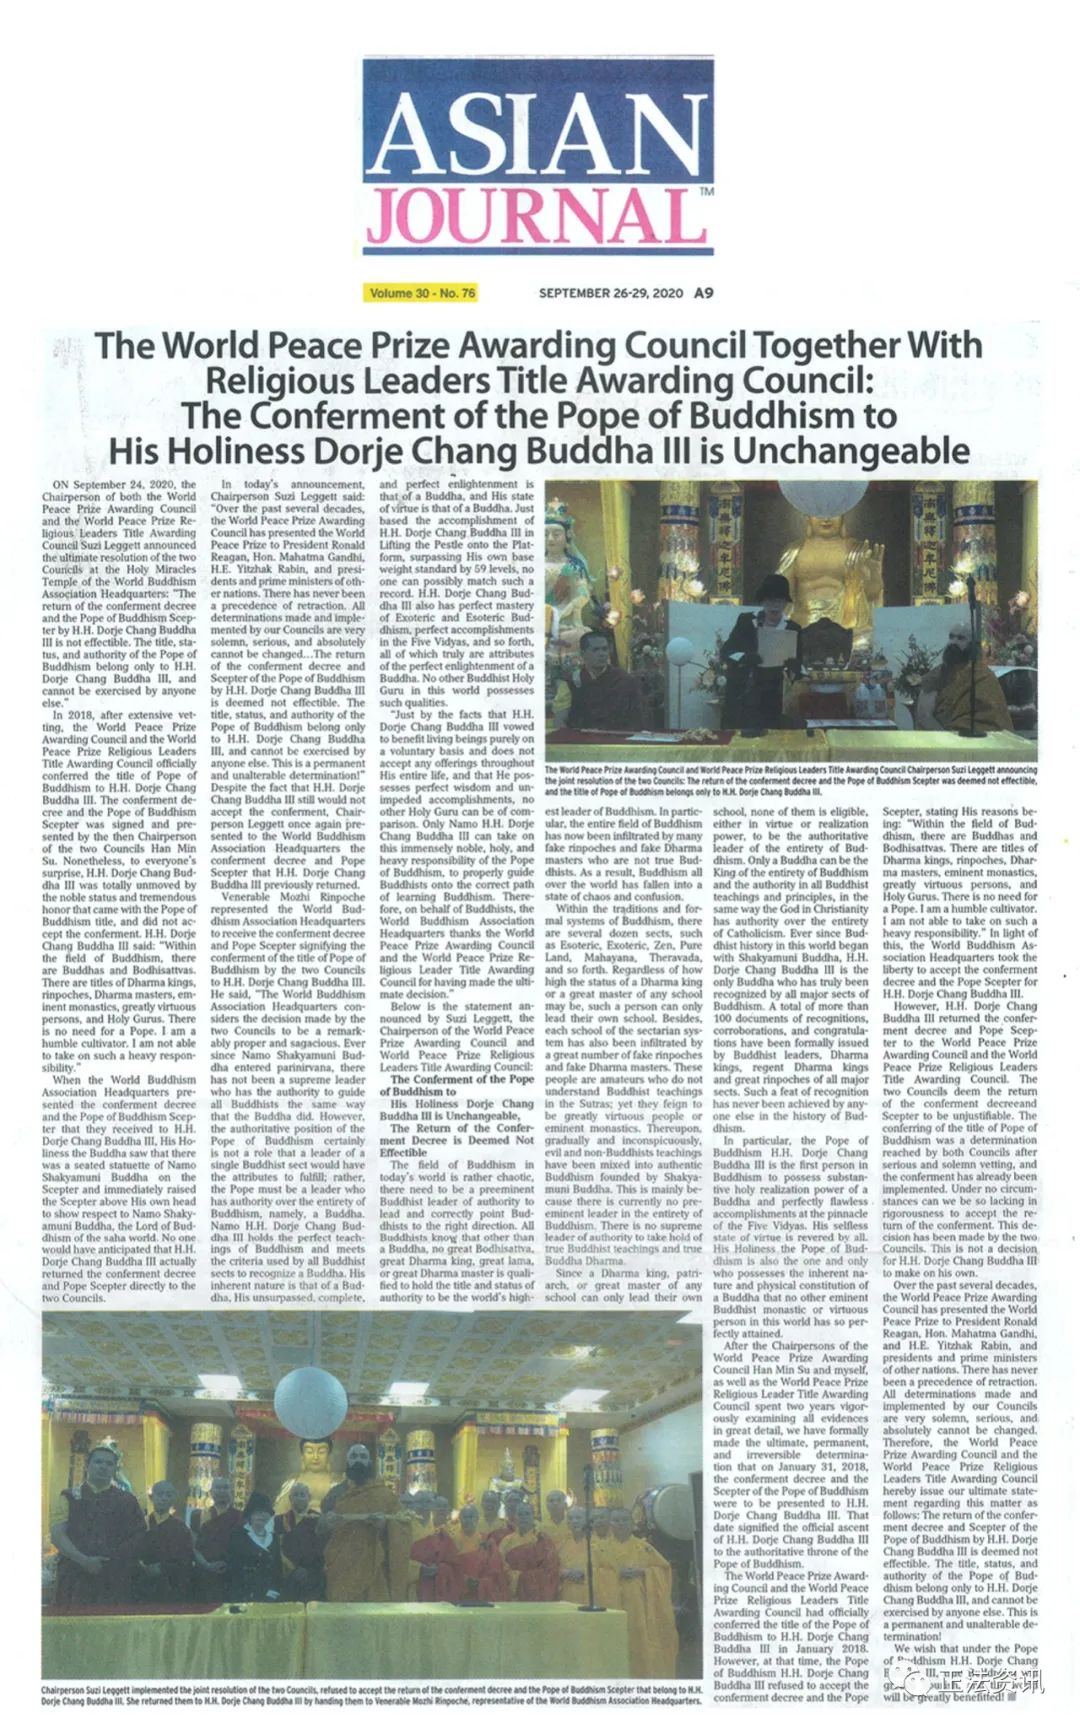 附件 3. Asian Journal--The World Peace Prize Awarding Council Together with Religious Leaders Title Awarding_9-26-2020